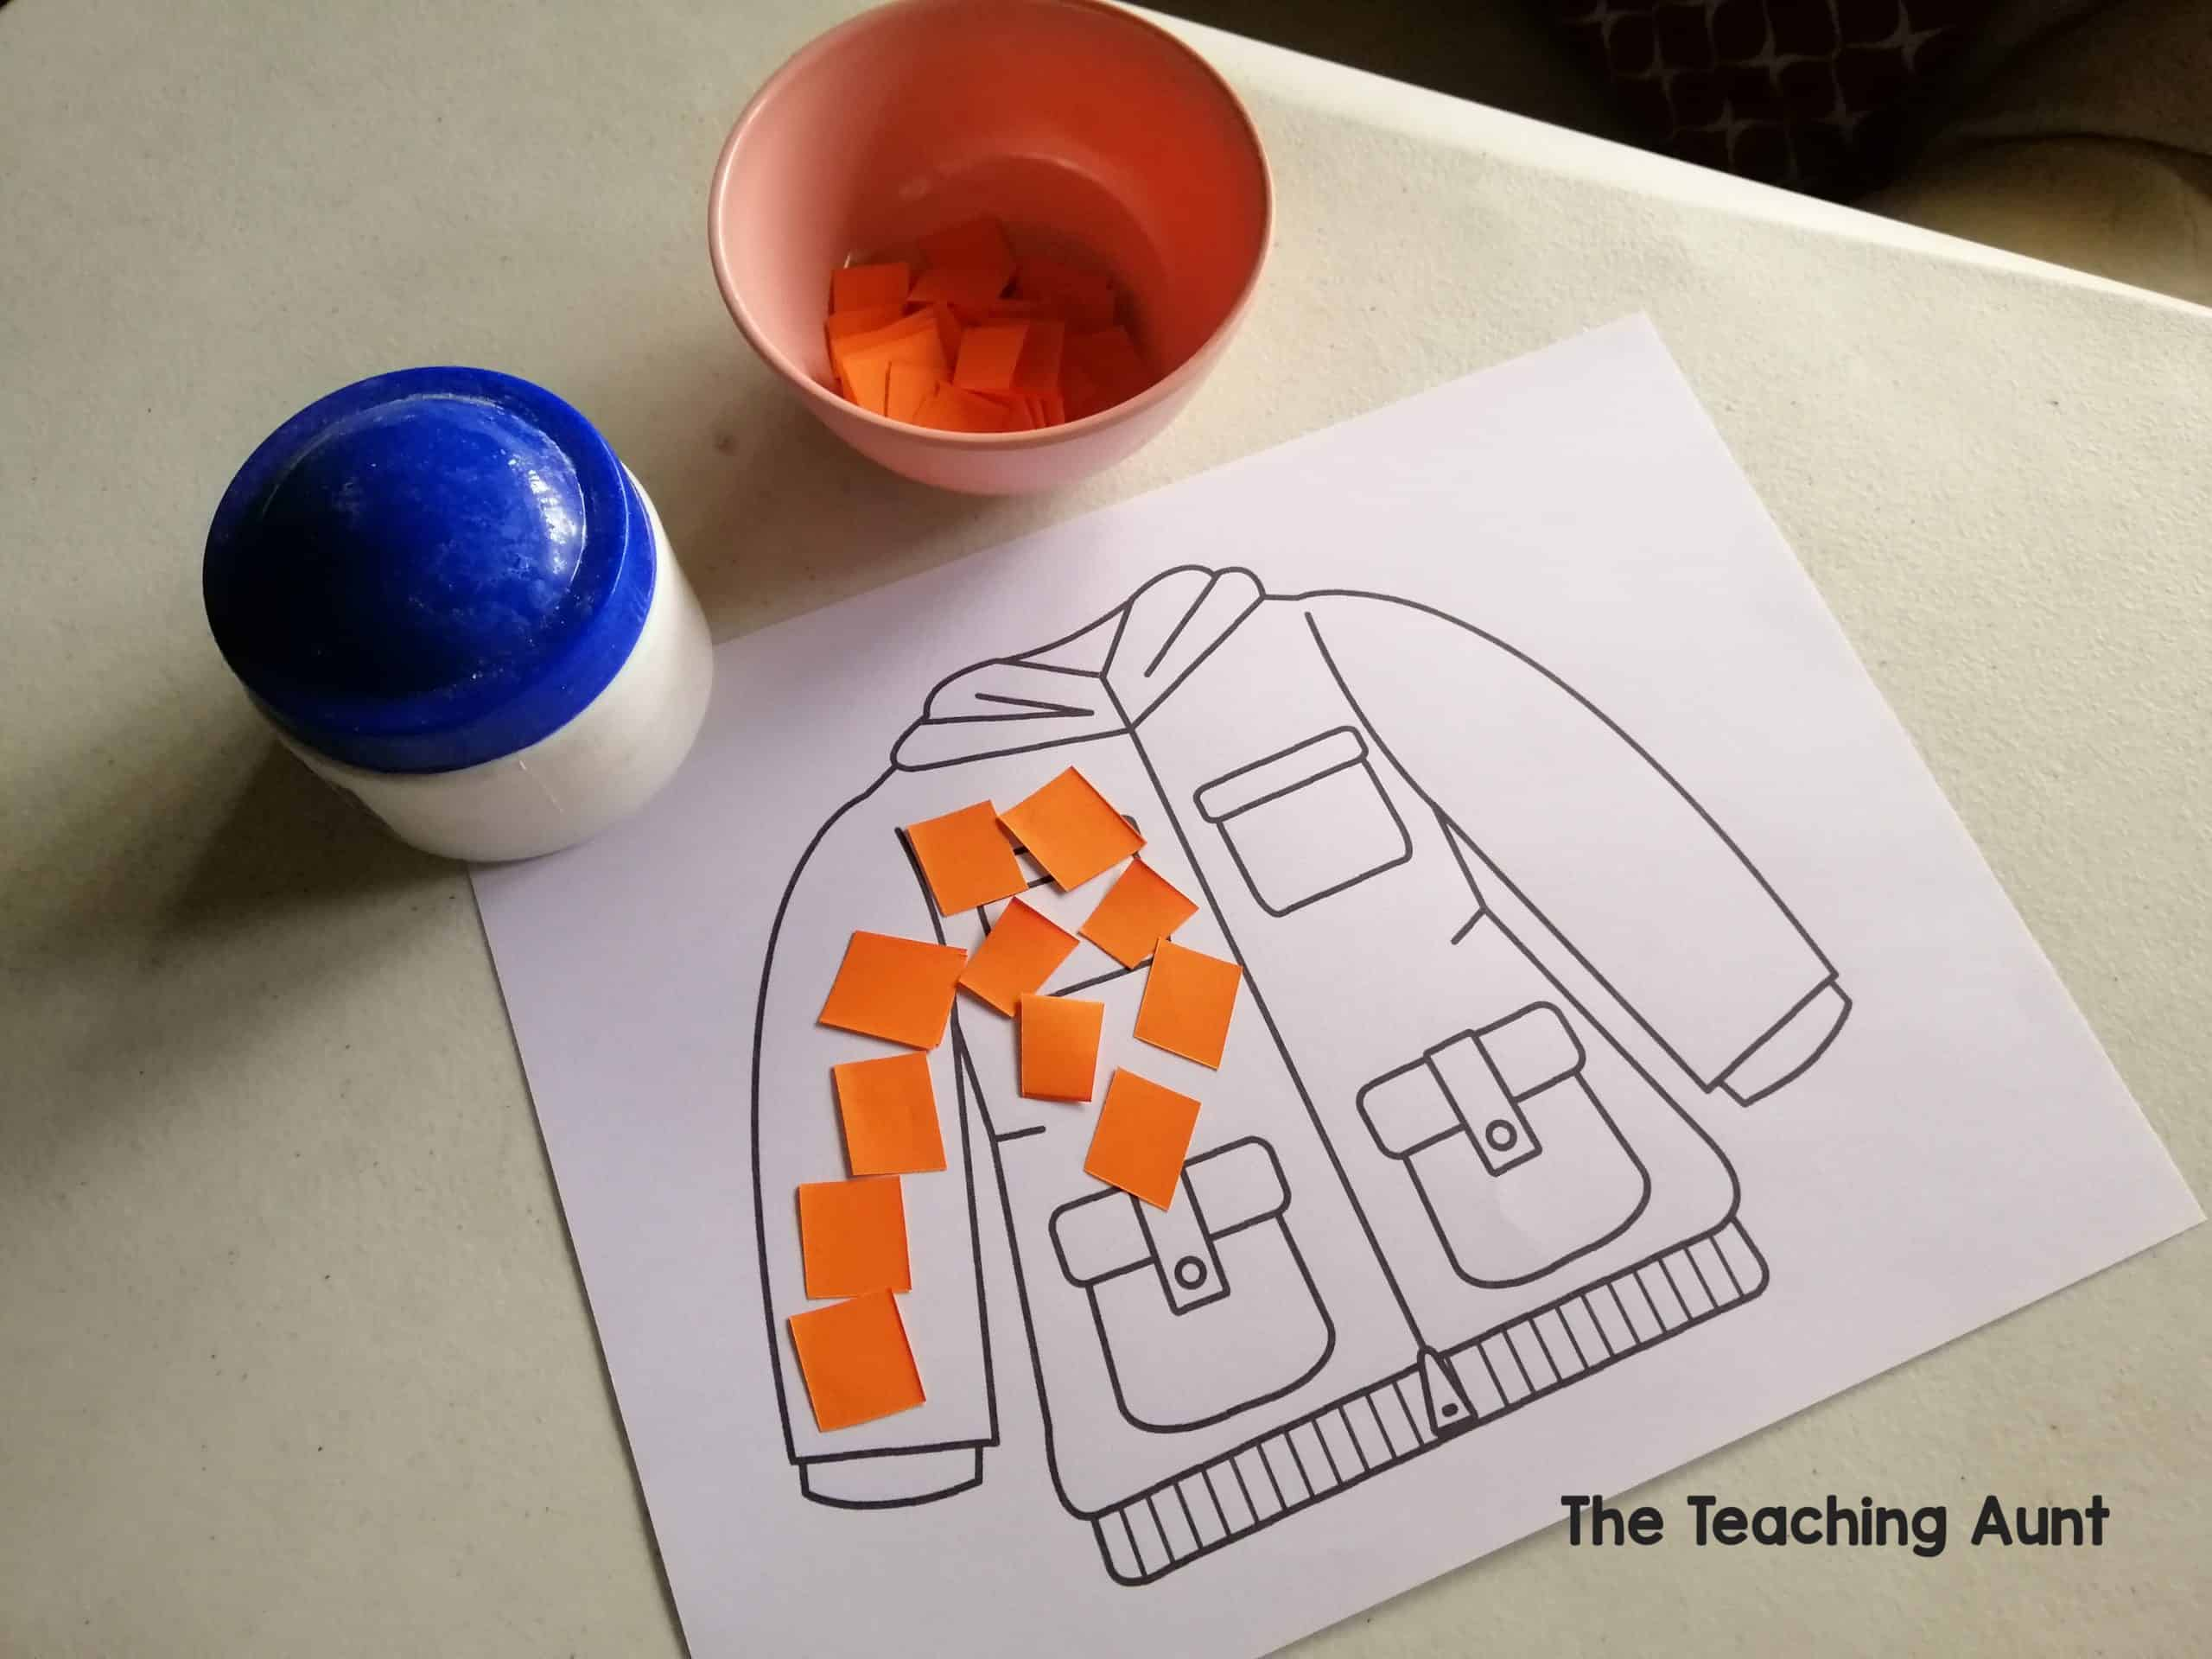 J is for Jacket: Paper Pasting Activity with Free Printable from The Teaching Aunt